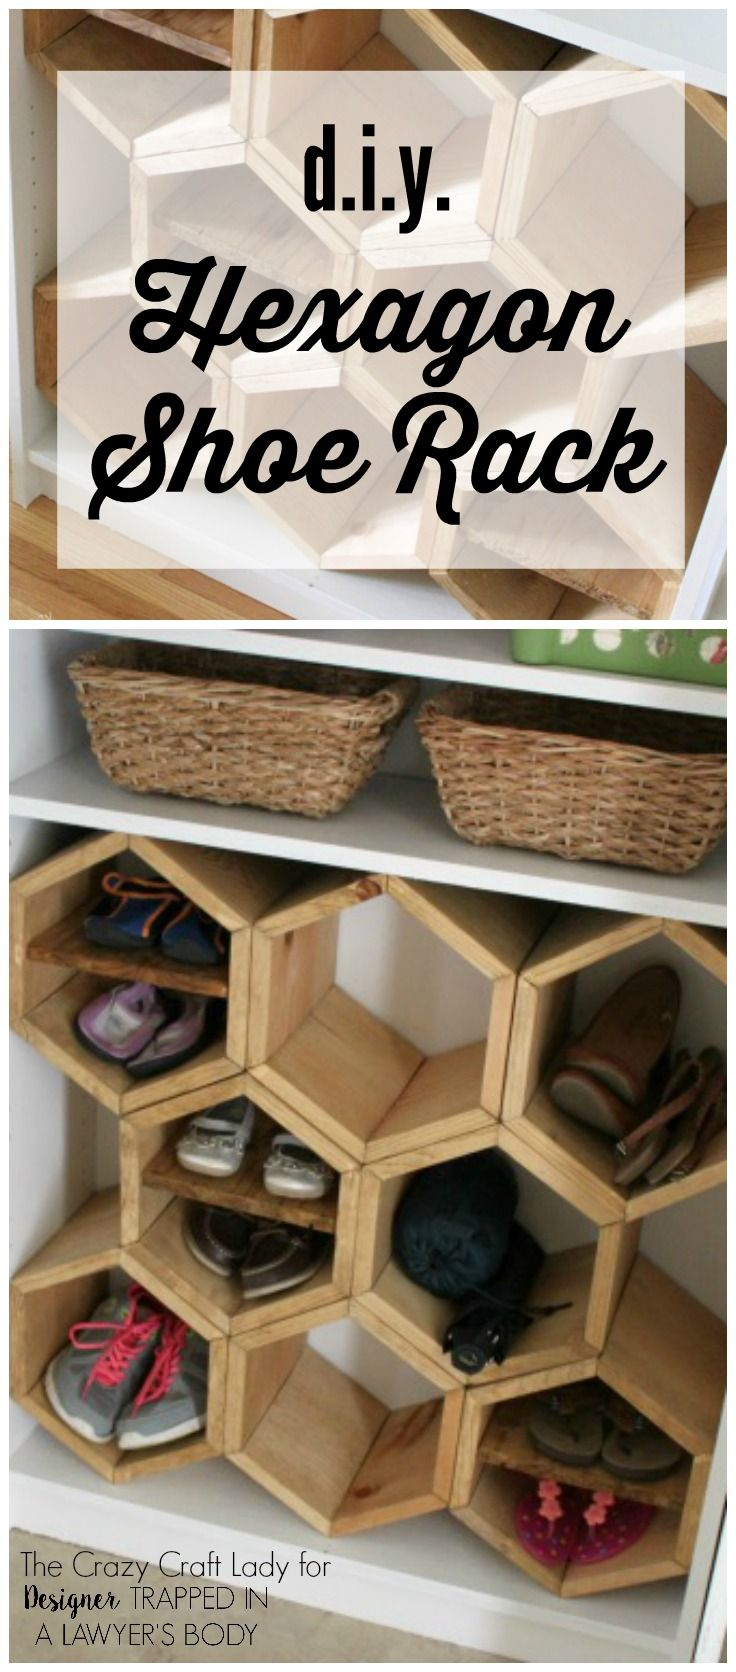 GENIUS! Make a DIY shoe rack using an old bookshelf and making hexagon inserts to hold the shoes! Full tutorial by The Crazy Craft Lady for…